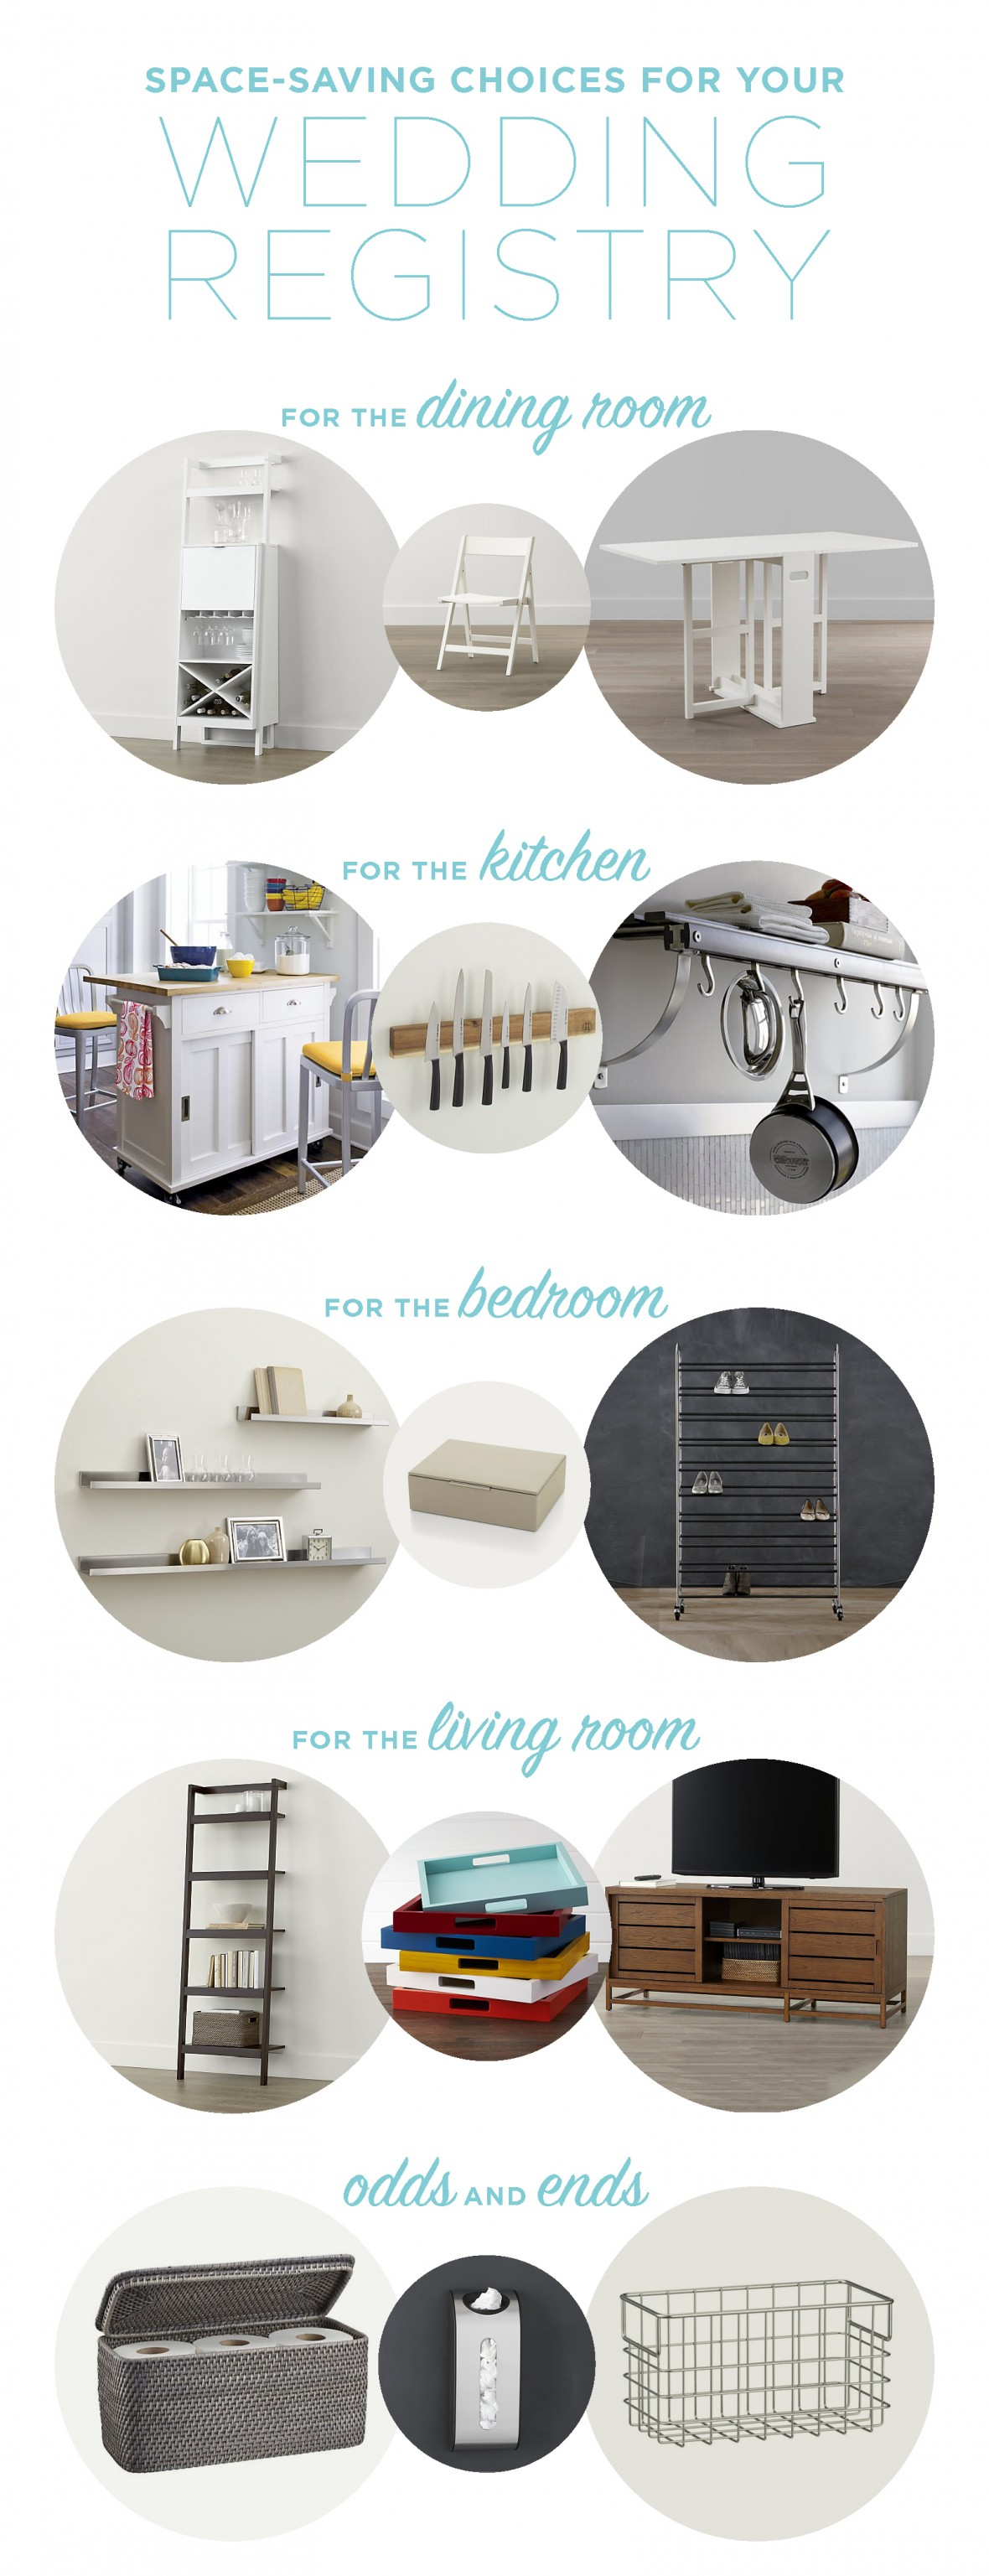 Registry Favorites For Couples With Small Spaces